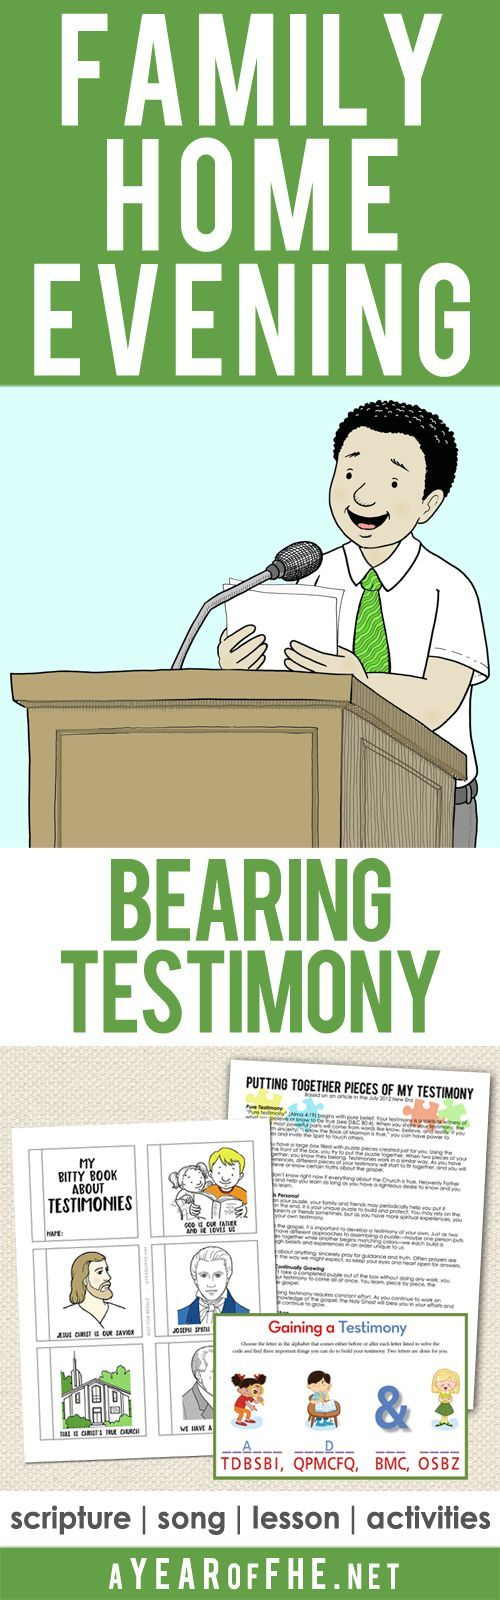 A Year of FHE // a Family Home Evening all about Gaining and Sharing a Testimony! Includes a scripture, song, lesson and activites for young kids, older kids, and teens!  #LDS #Testimony